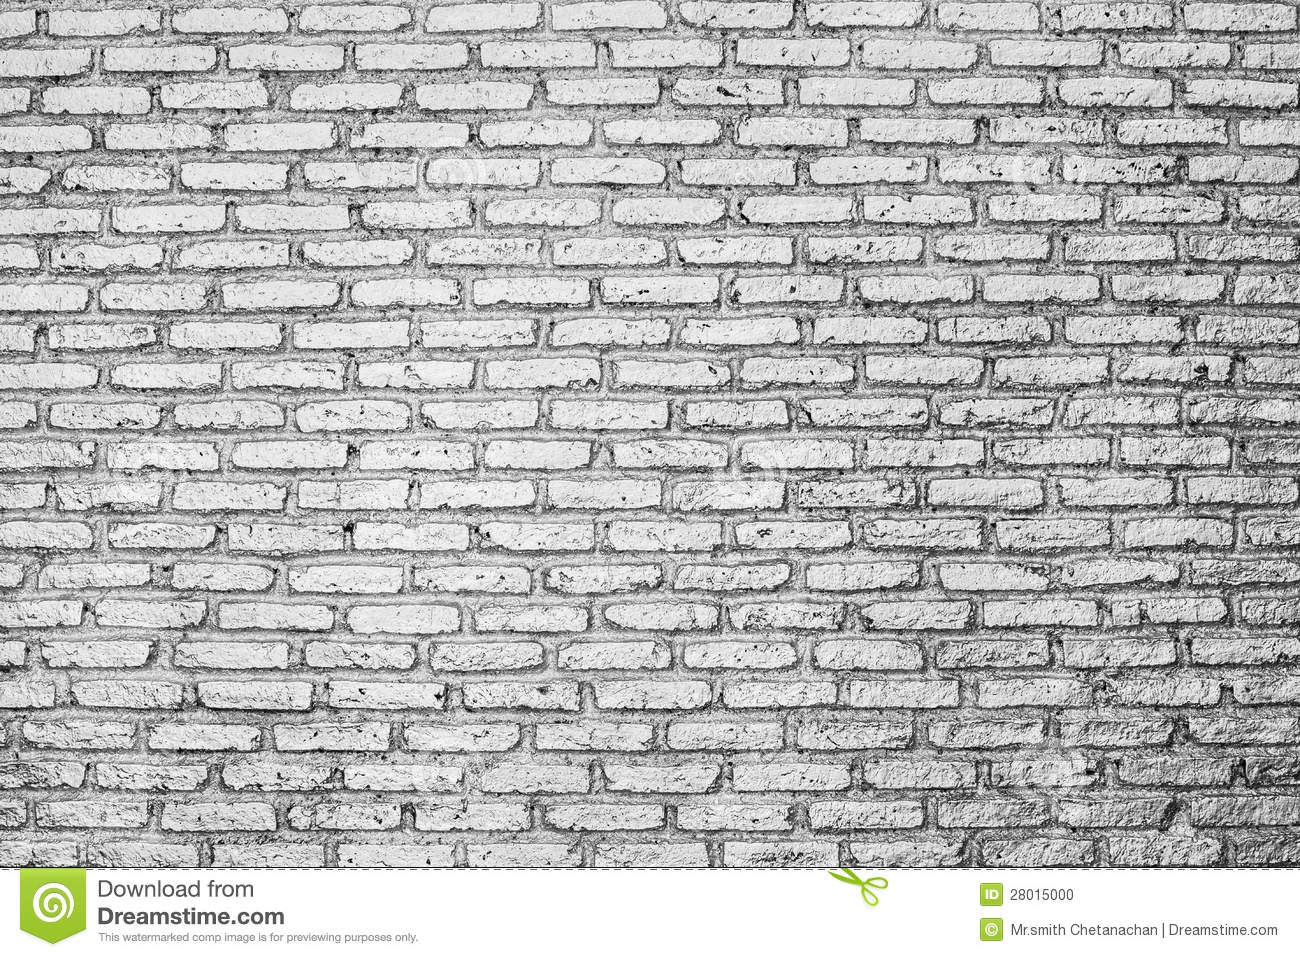 Mur Gris De Couleur Photo Stock Image 28015000: mur de brique gris